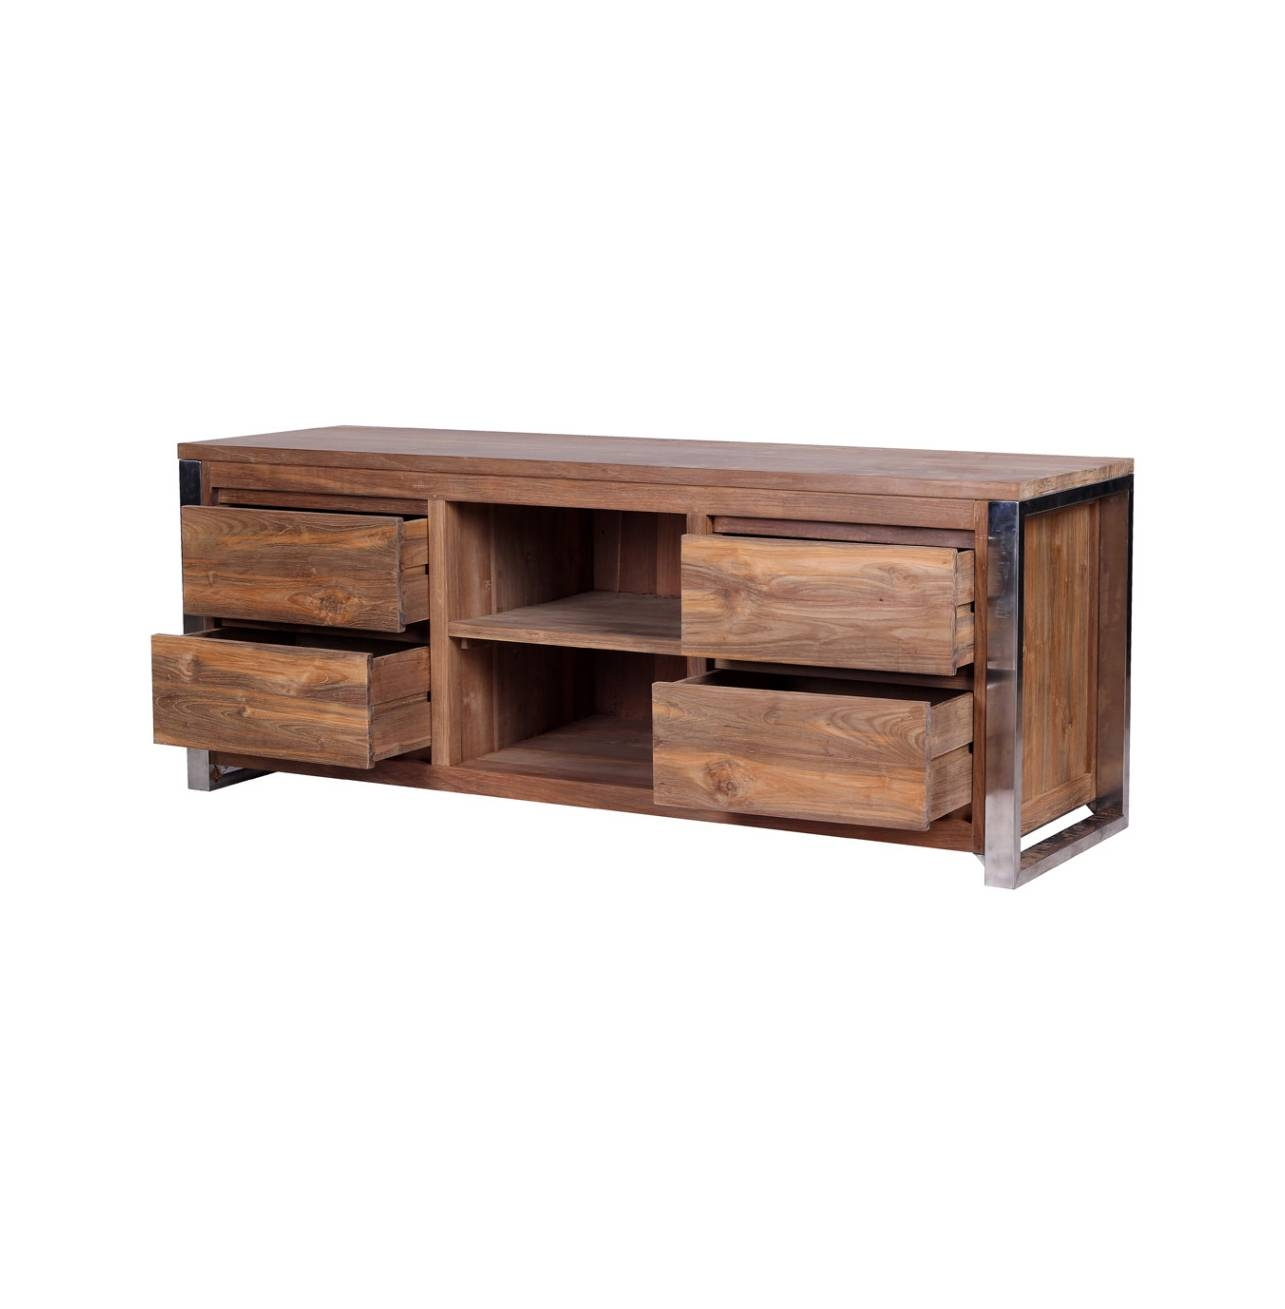 Rarem Reclaimed Wood Tv Stand - Reclaimed Teak And Stainless Steel regarding Reclaimed Wood And Metal Tv Stands (Image 13 of 15)